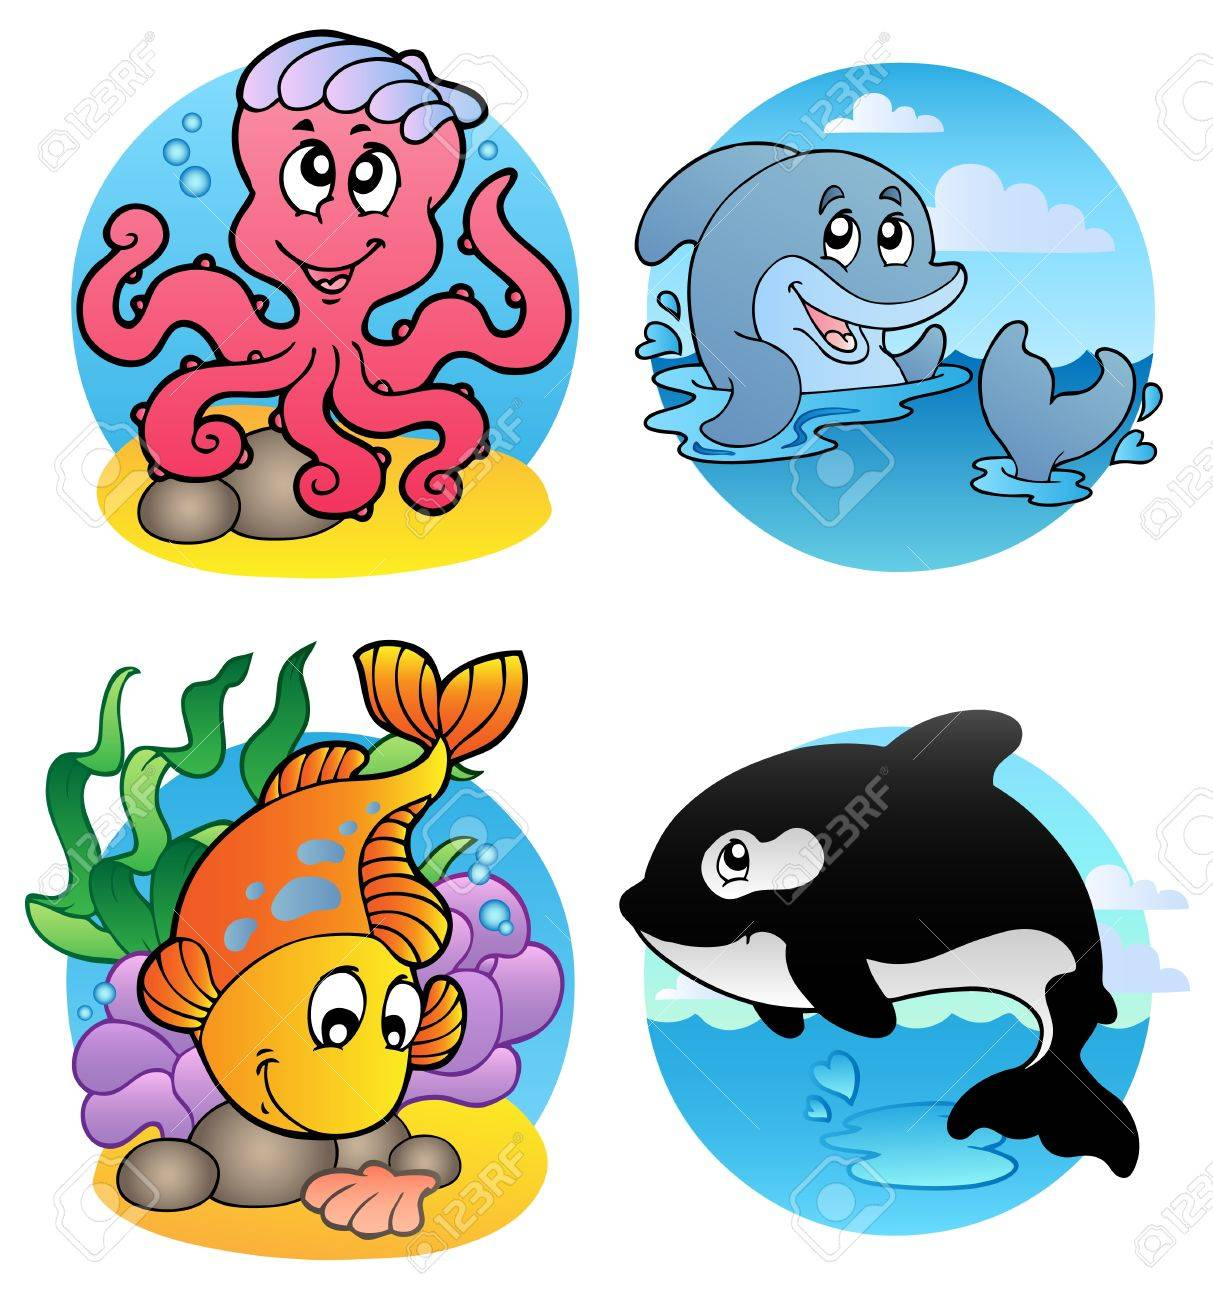 various aquatic animals and fishes illustration royalty free